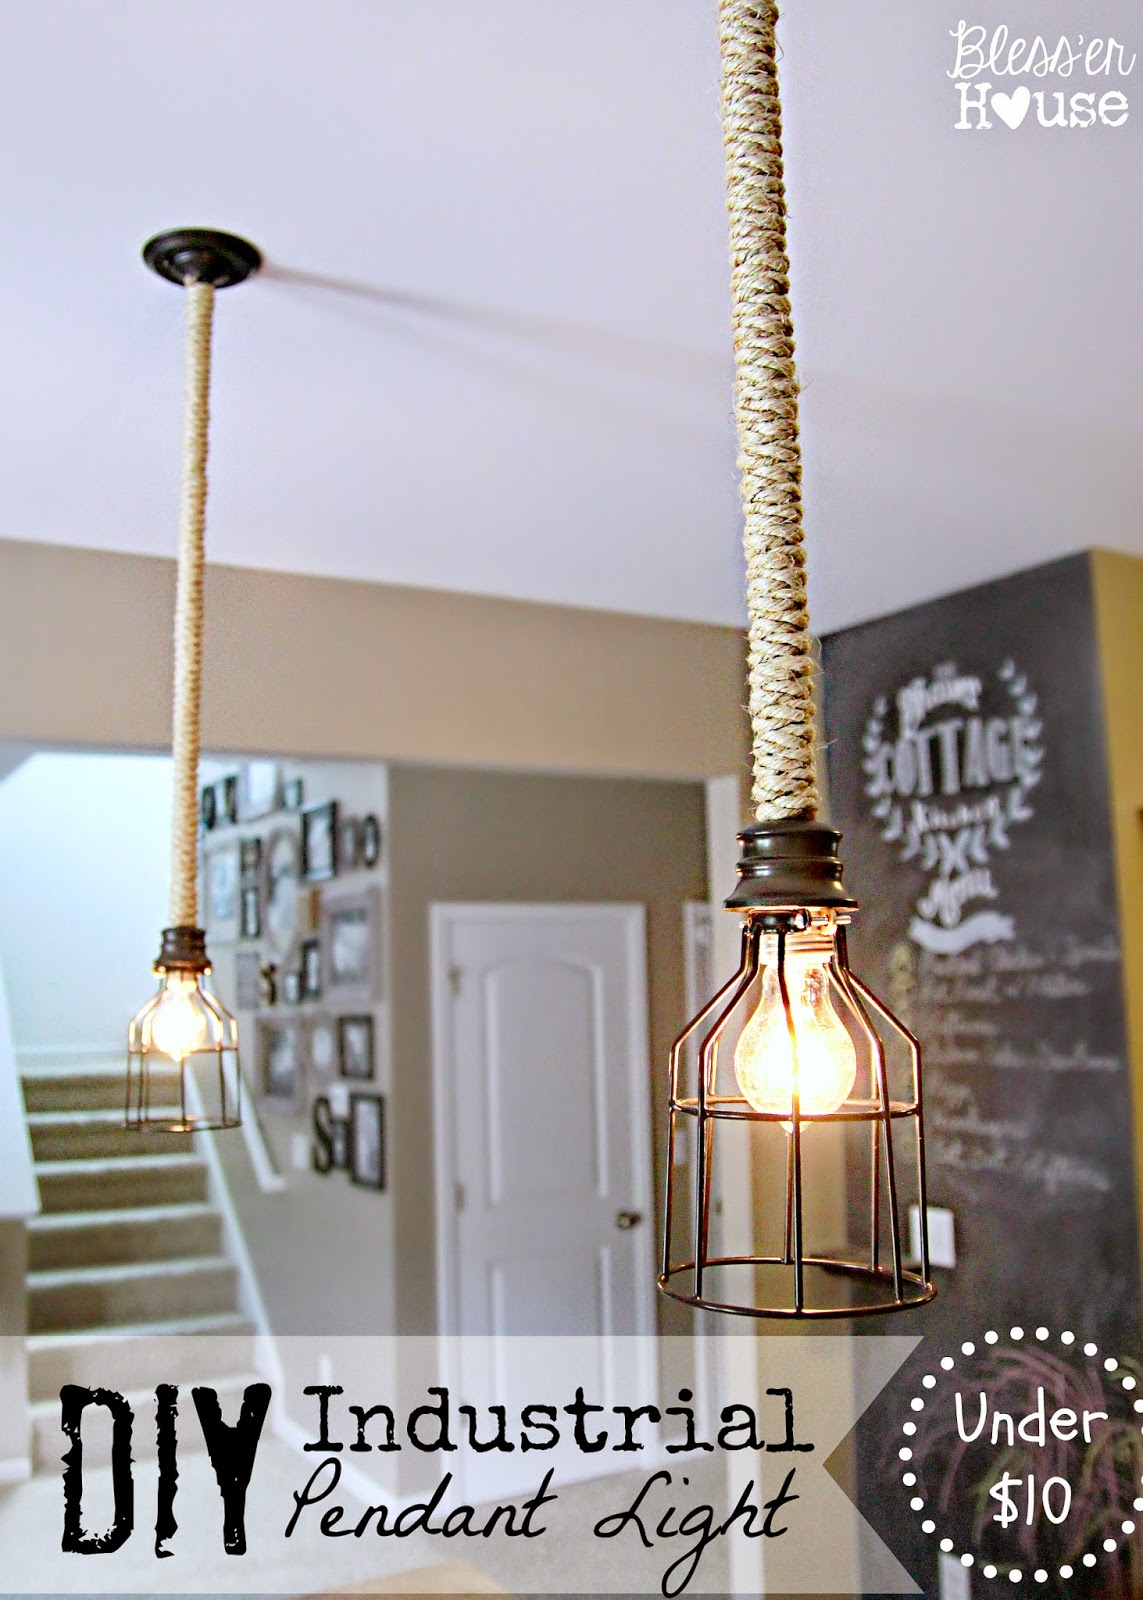 Restoration Hardware Vintage French Farmhouse Sconce Diy Industrial Pendant Light For Under 10 Bless Er House